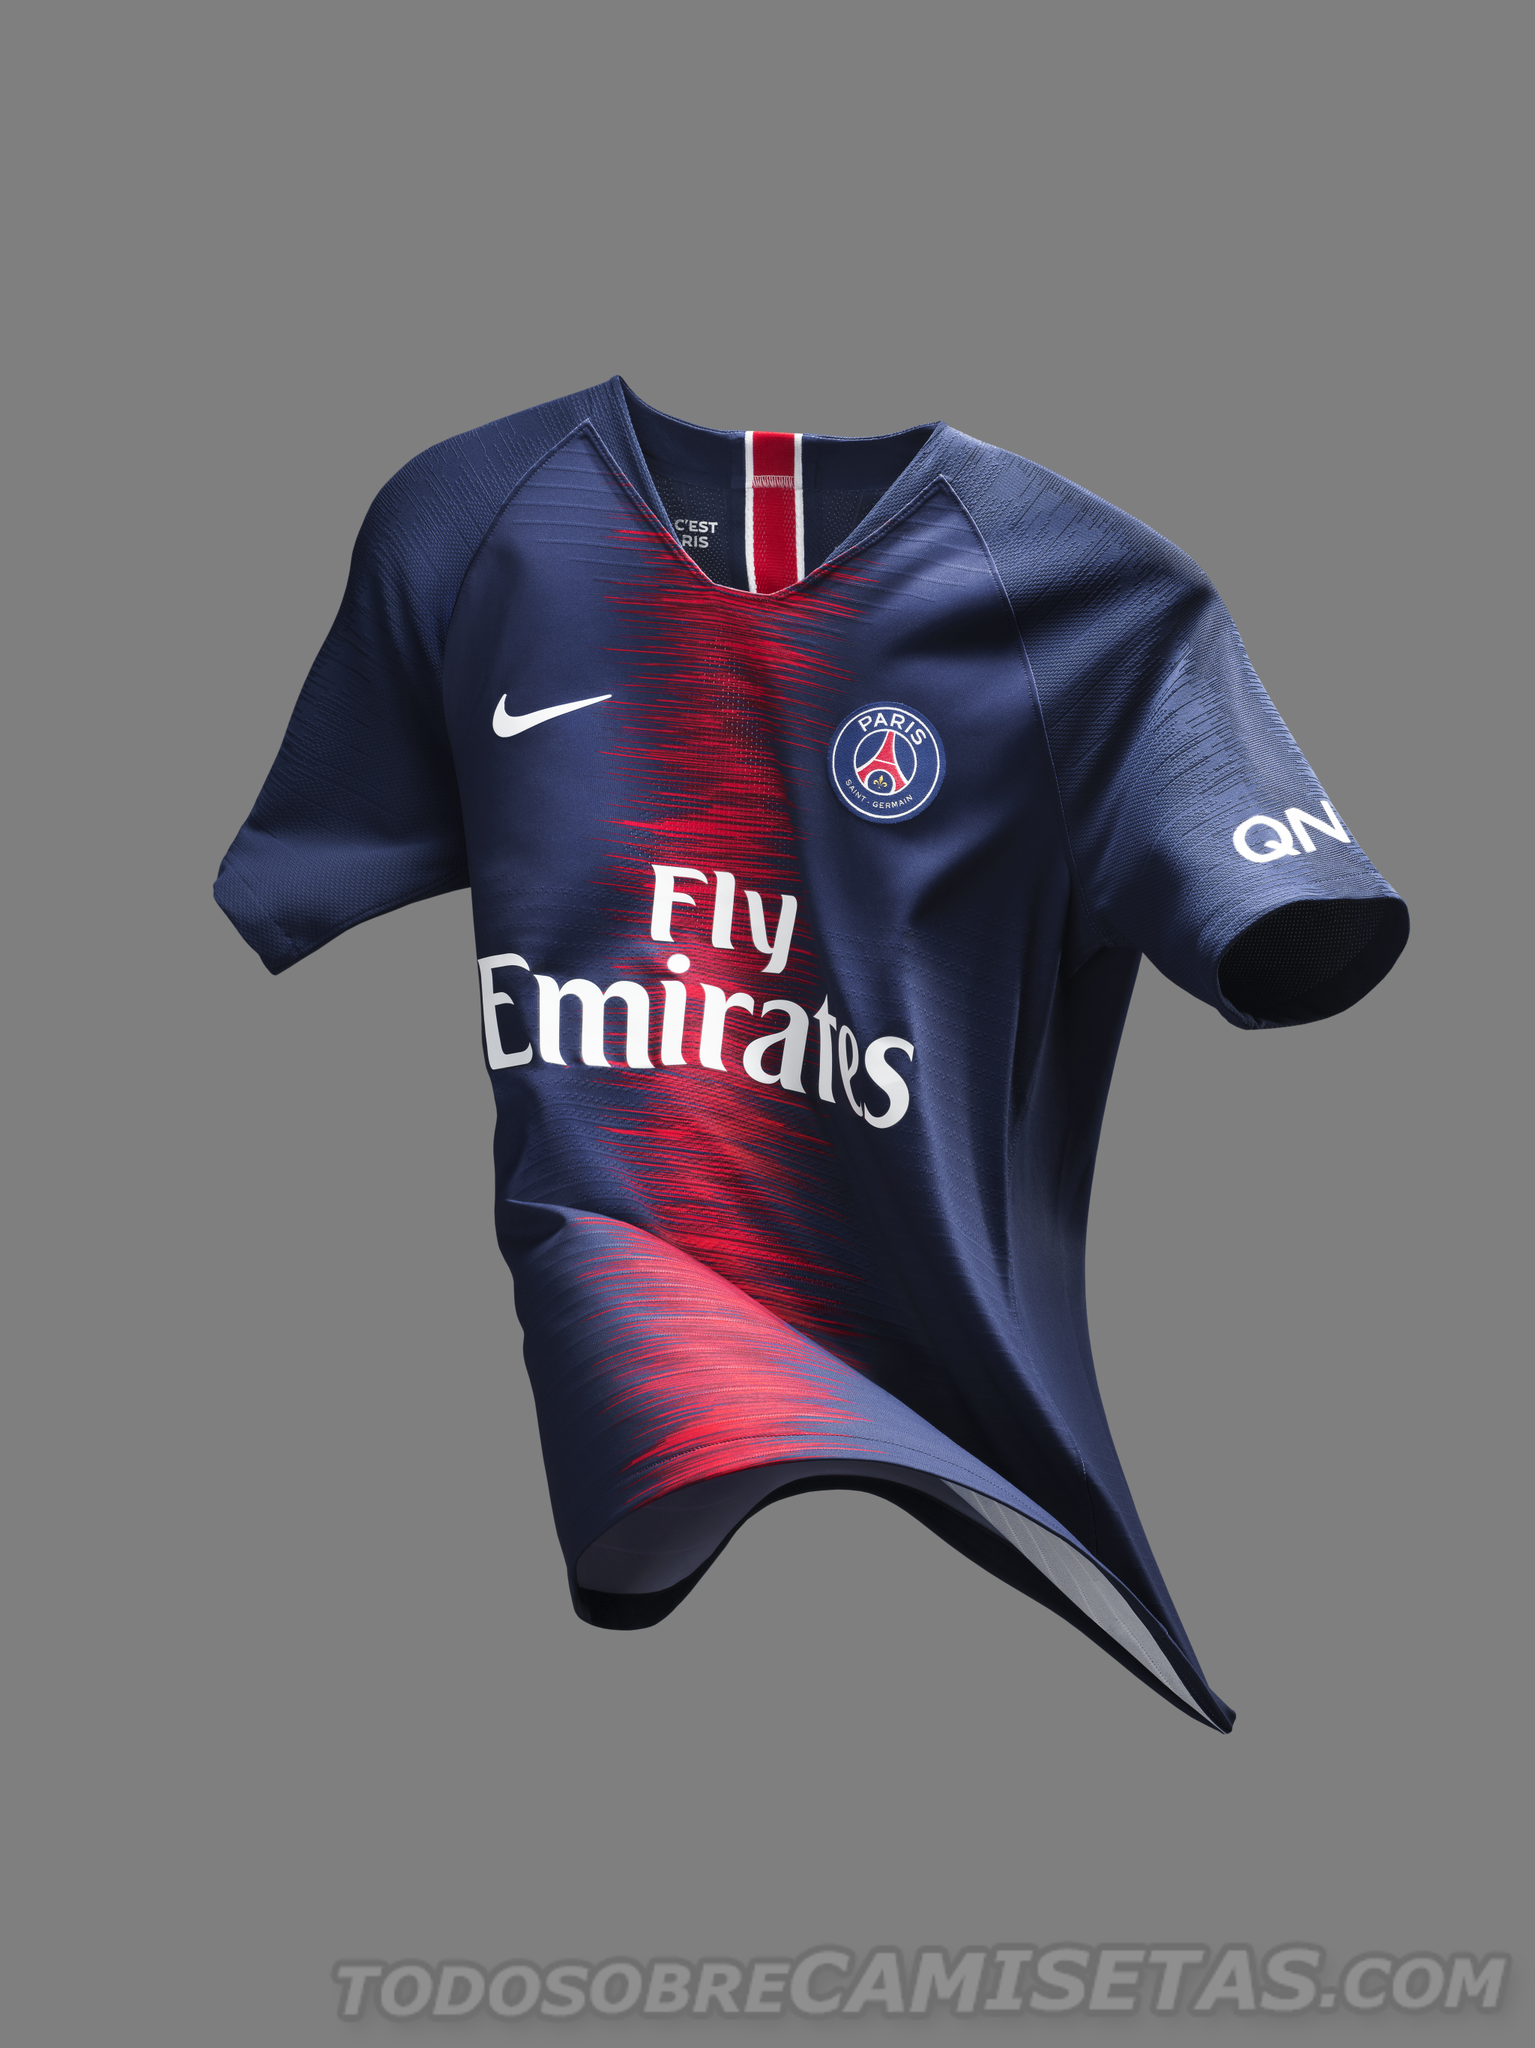 PSG 2018/19 Nike Home Kit Paris saintgermain, Soccer